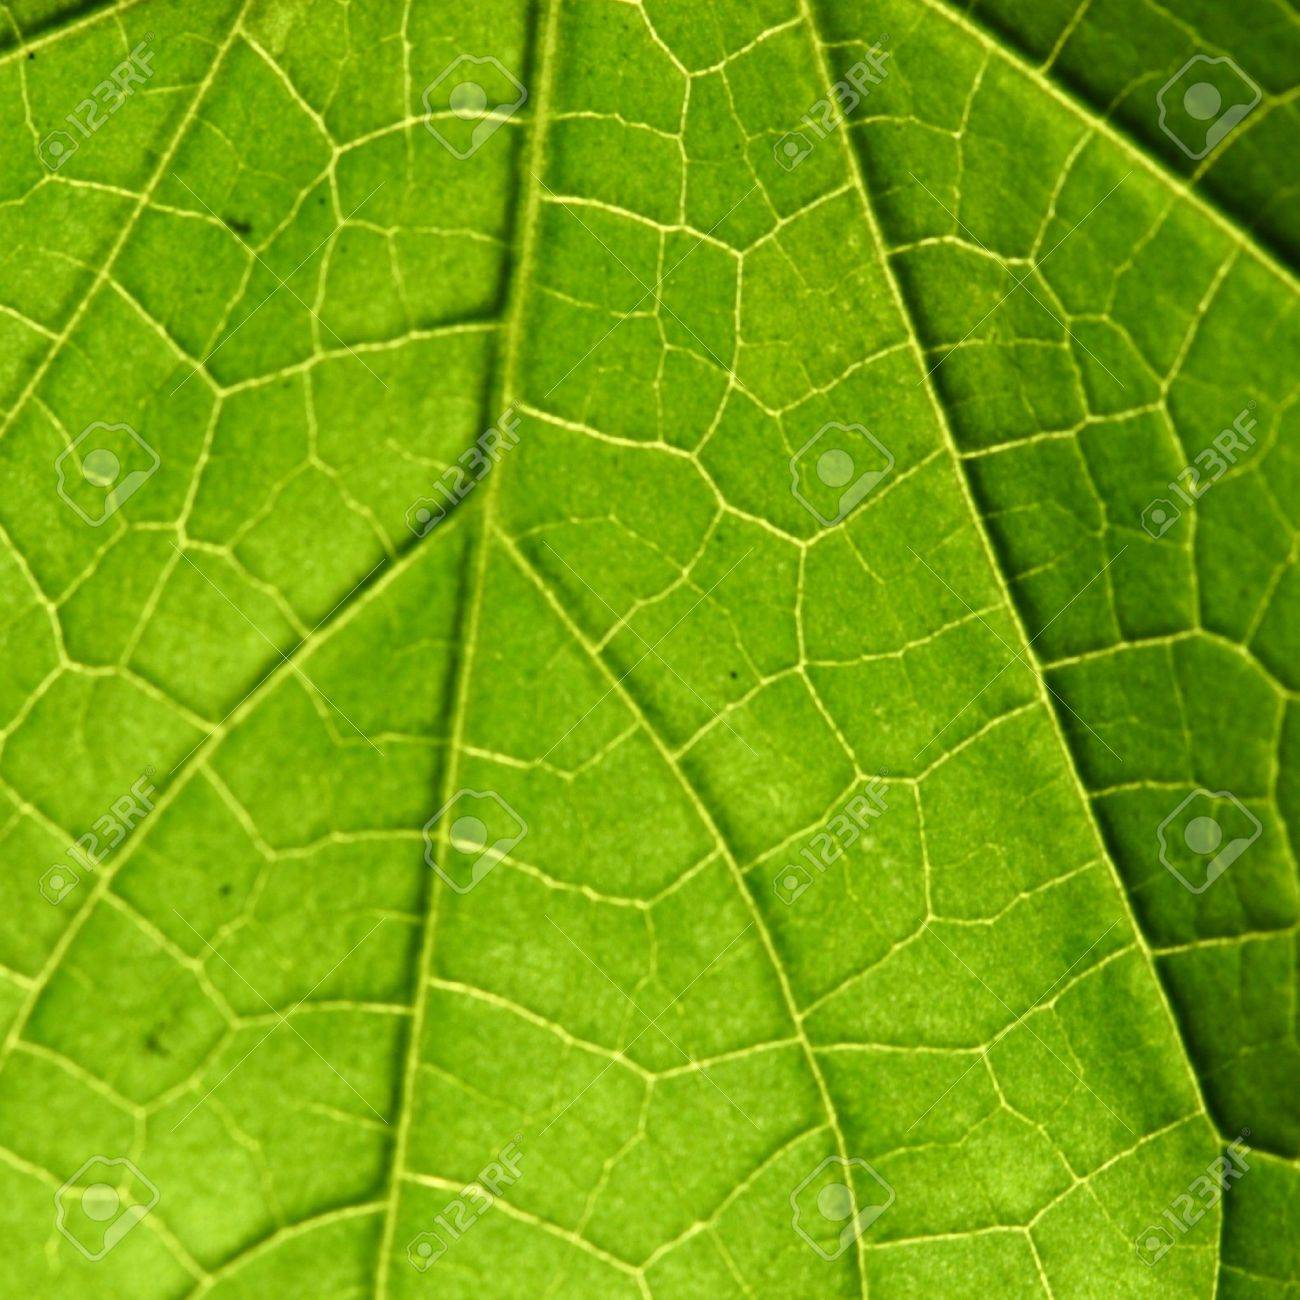 green leaf close up nature background Stock Photo - 8743970